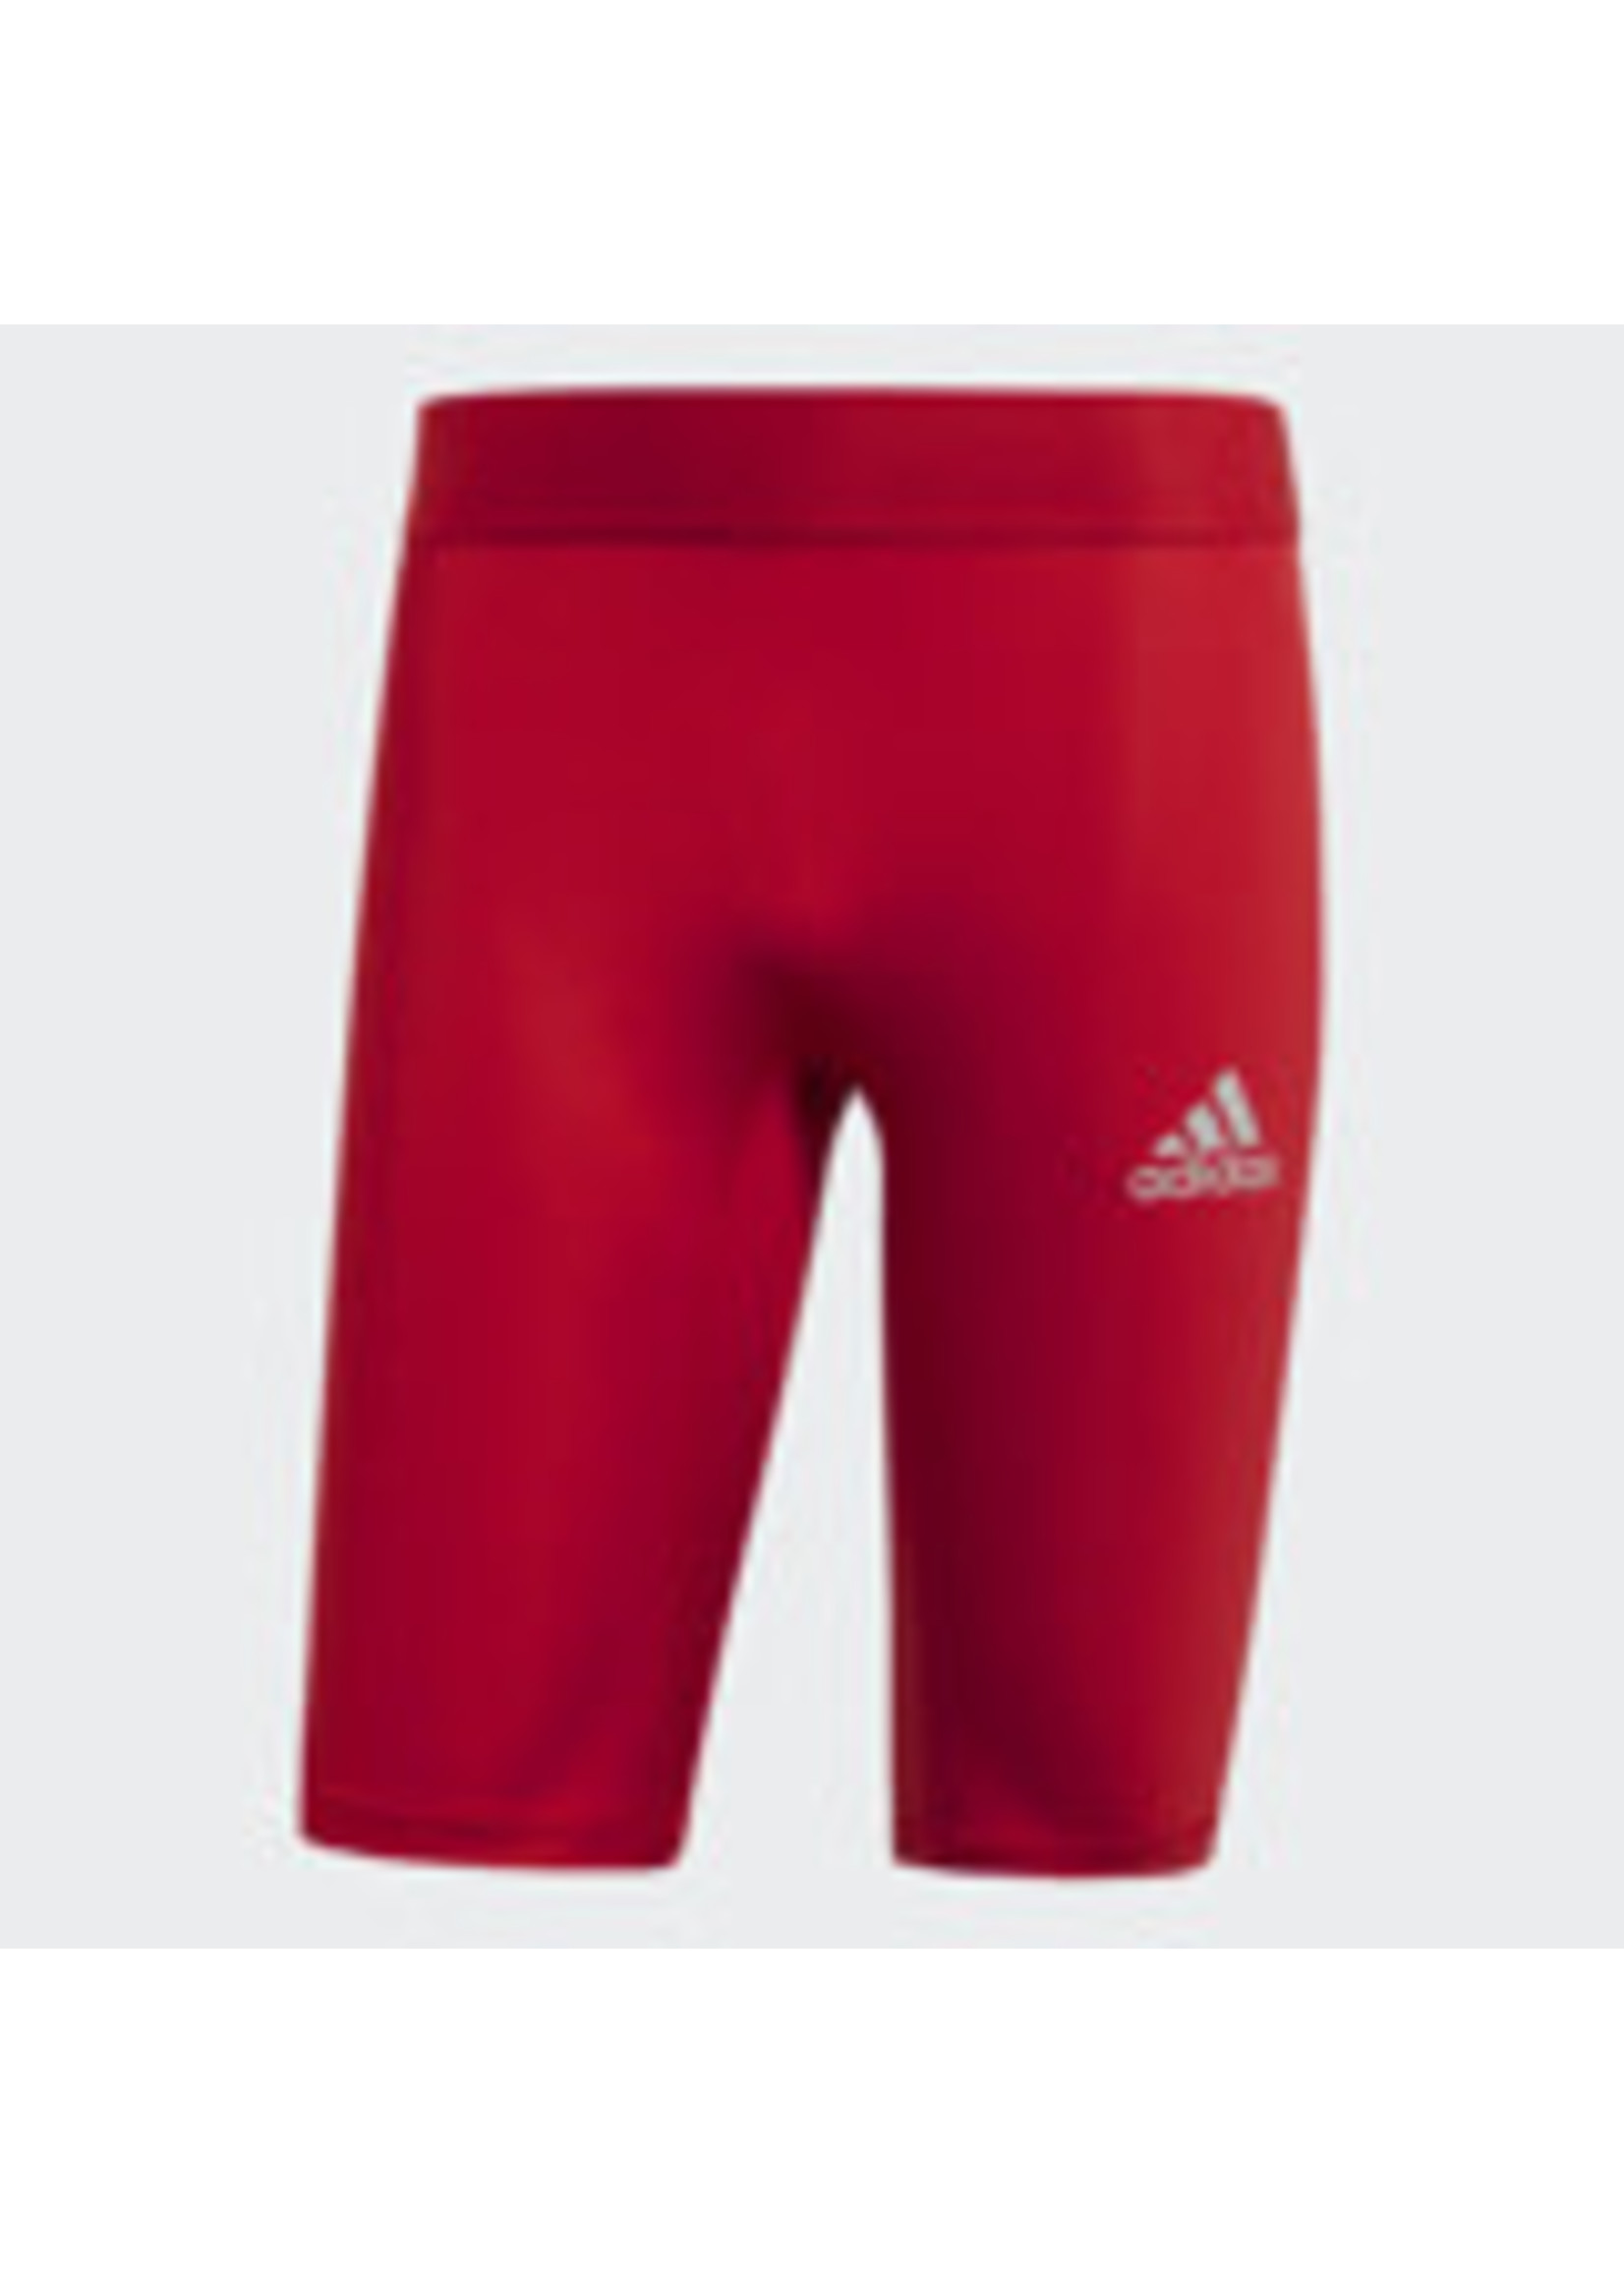 Adidas Compression Red Short Adult